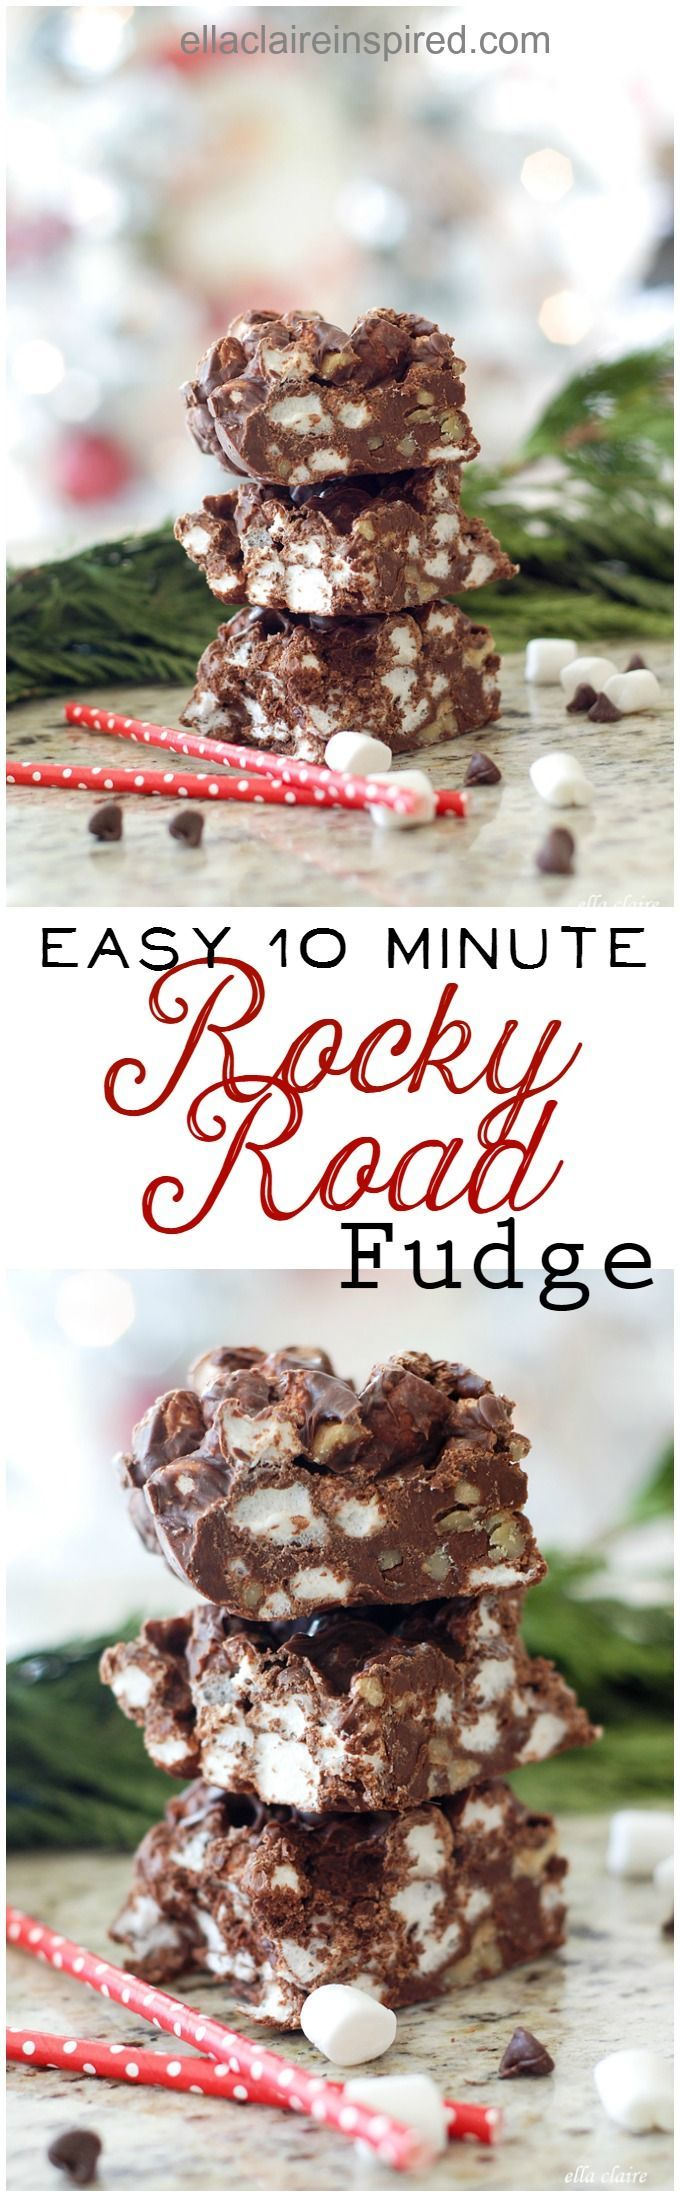 Whip up this amazingly delicious Rocky Road Fudge recipe in less than 10 minutes! Find the recipe here at ellaclaireinspired.com